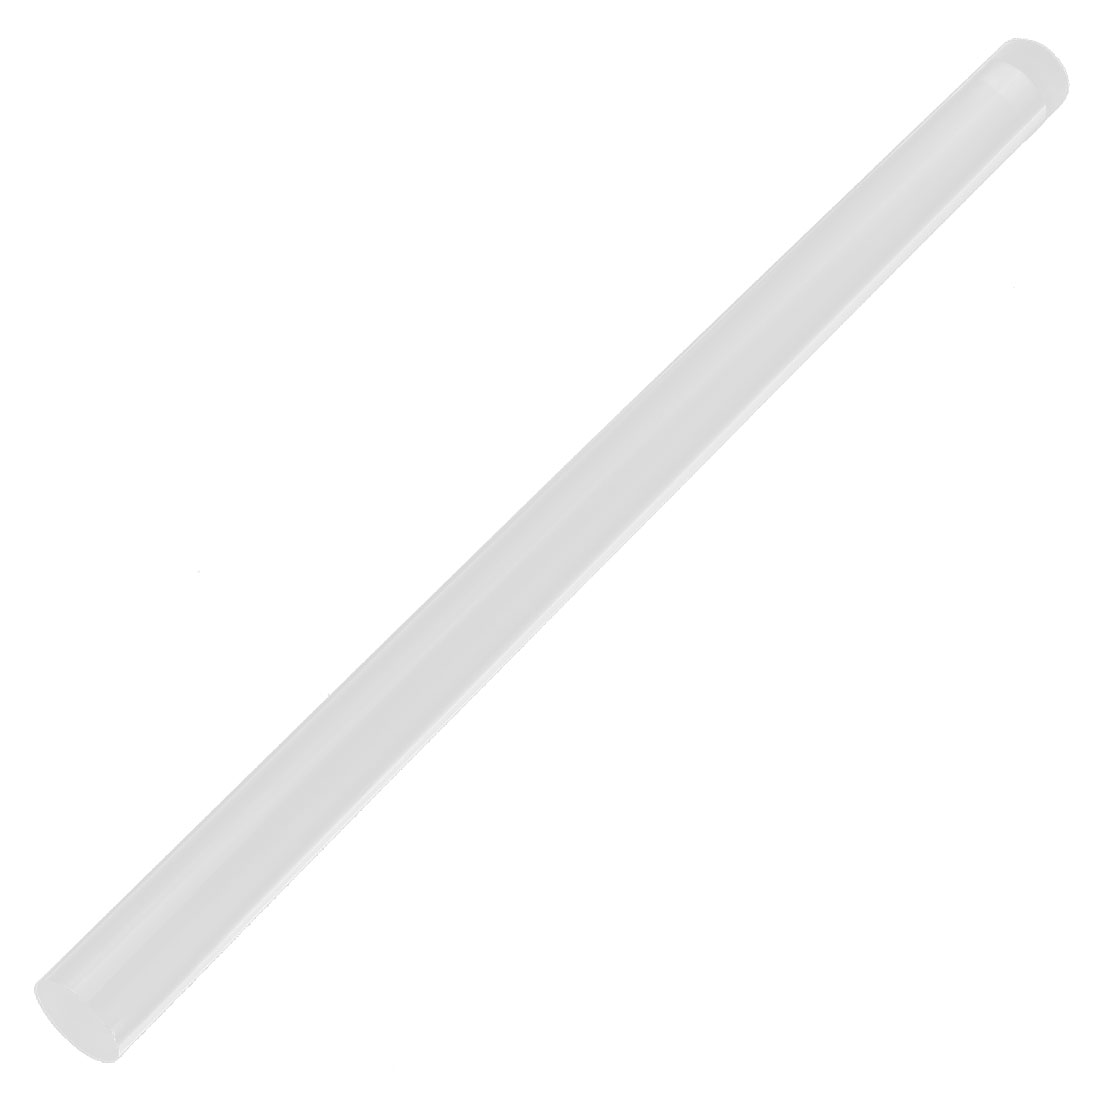 "18mm Diameter Clear Round Acrylic Rod PMMA Extruded Bar 12"" Length"